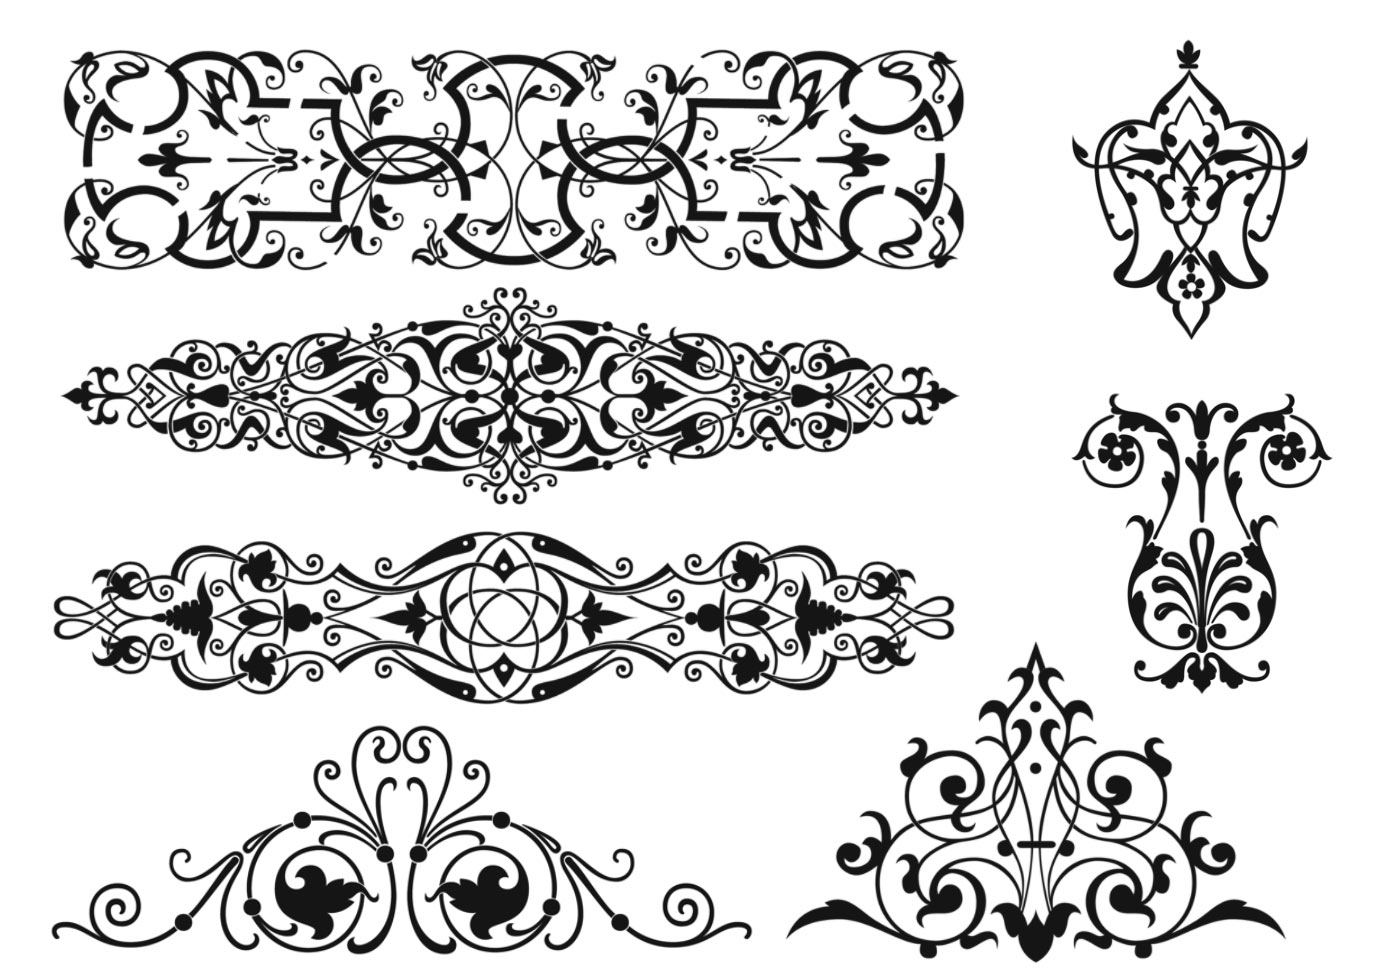 art nouveau ornament vector pack download free vector art stock graphics images. Black Bedroom Furniture Sets. Home Design Ideas